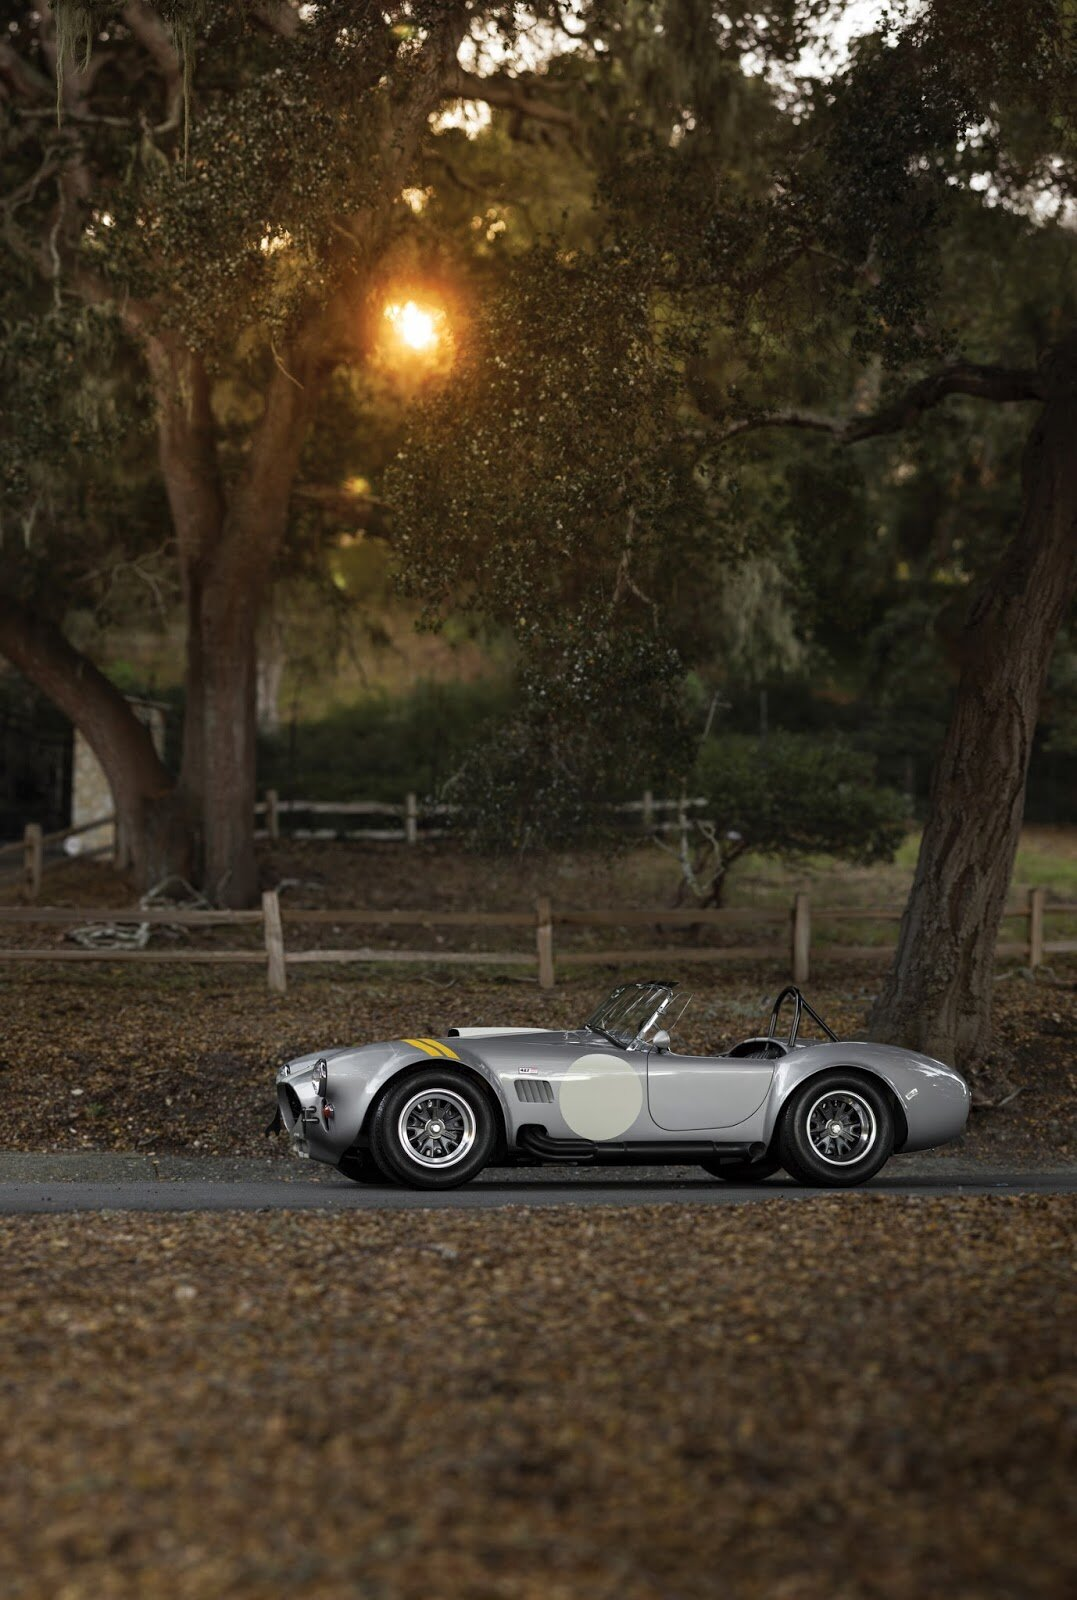 shelby-cobra-427-is-up-for-sale_100638123_h.jpg